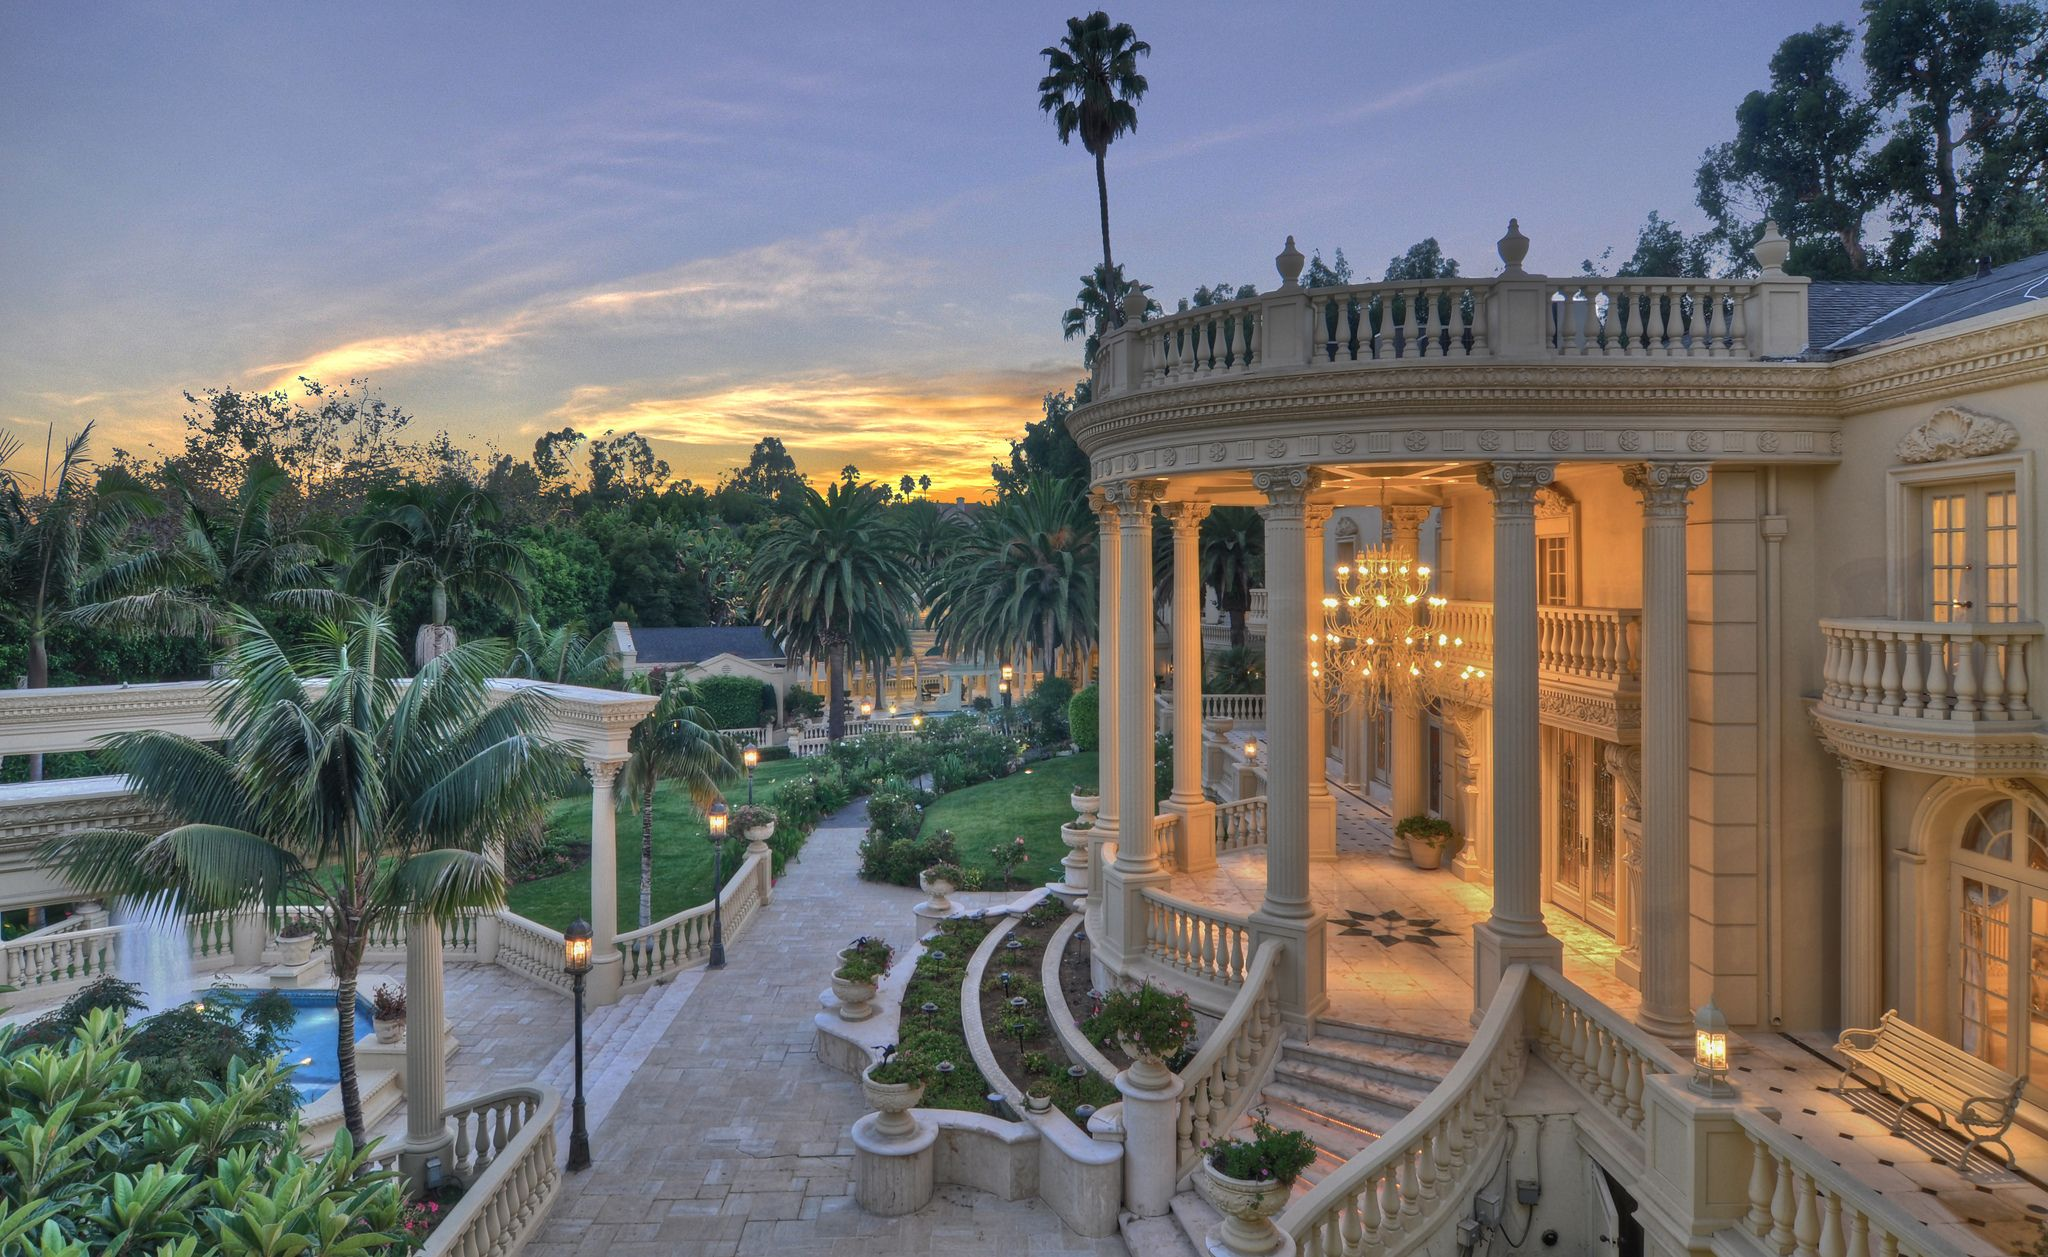 Beverly hills luxury real estate beverly hills mansions for Luxury homes in beverly hills ca